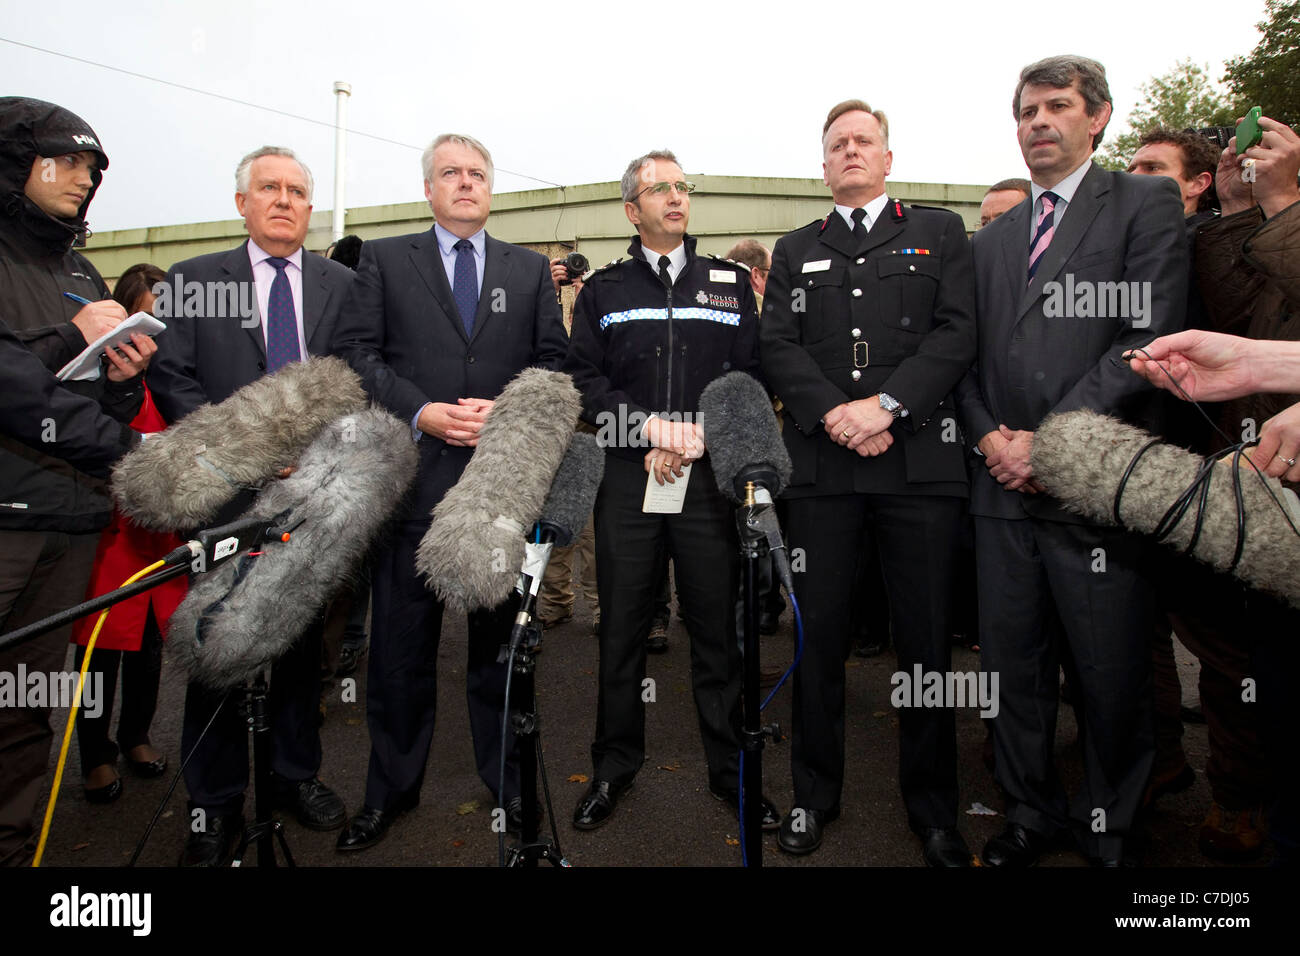 A press conference announces that the four missing miners have all been found dead at the Gleision Mine, Wales. - Stock Image